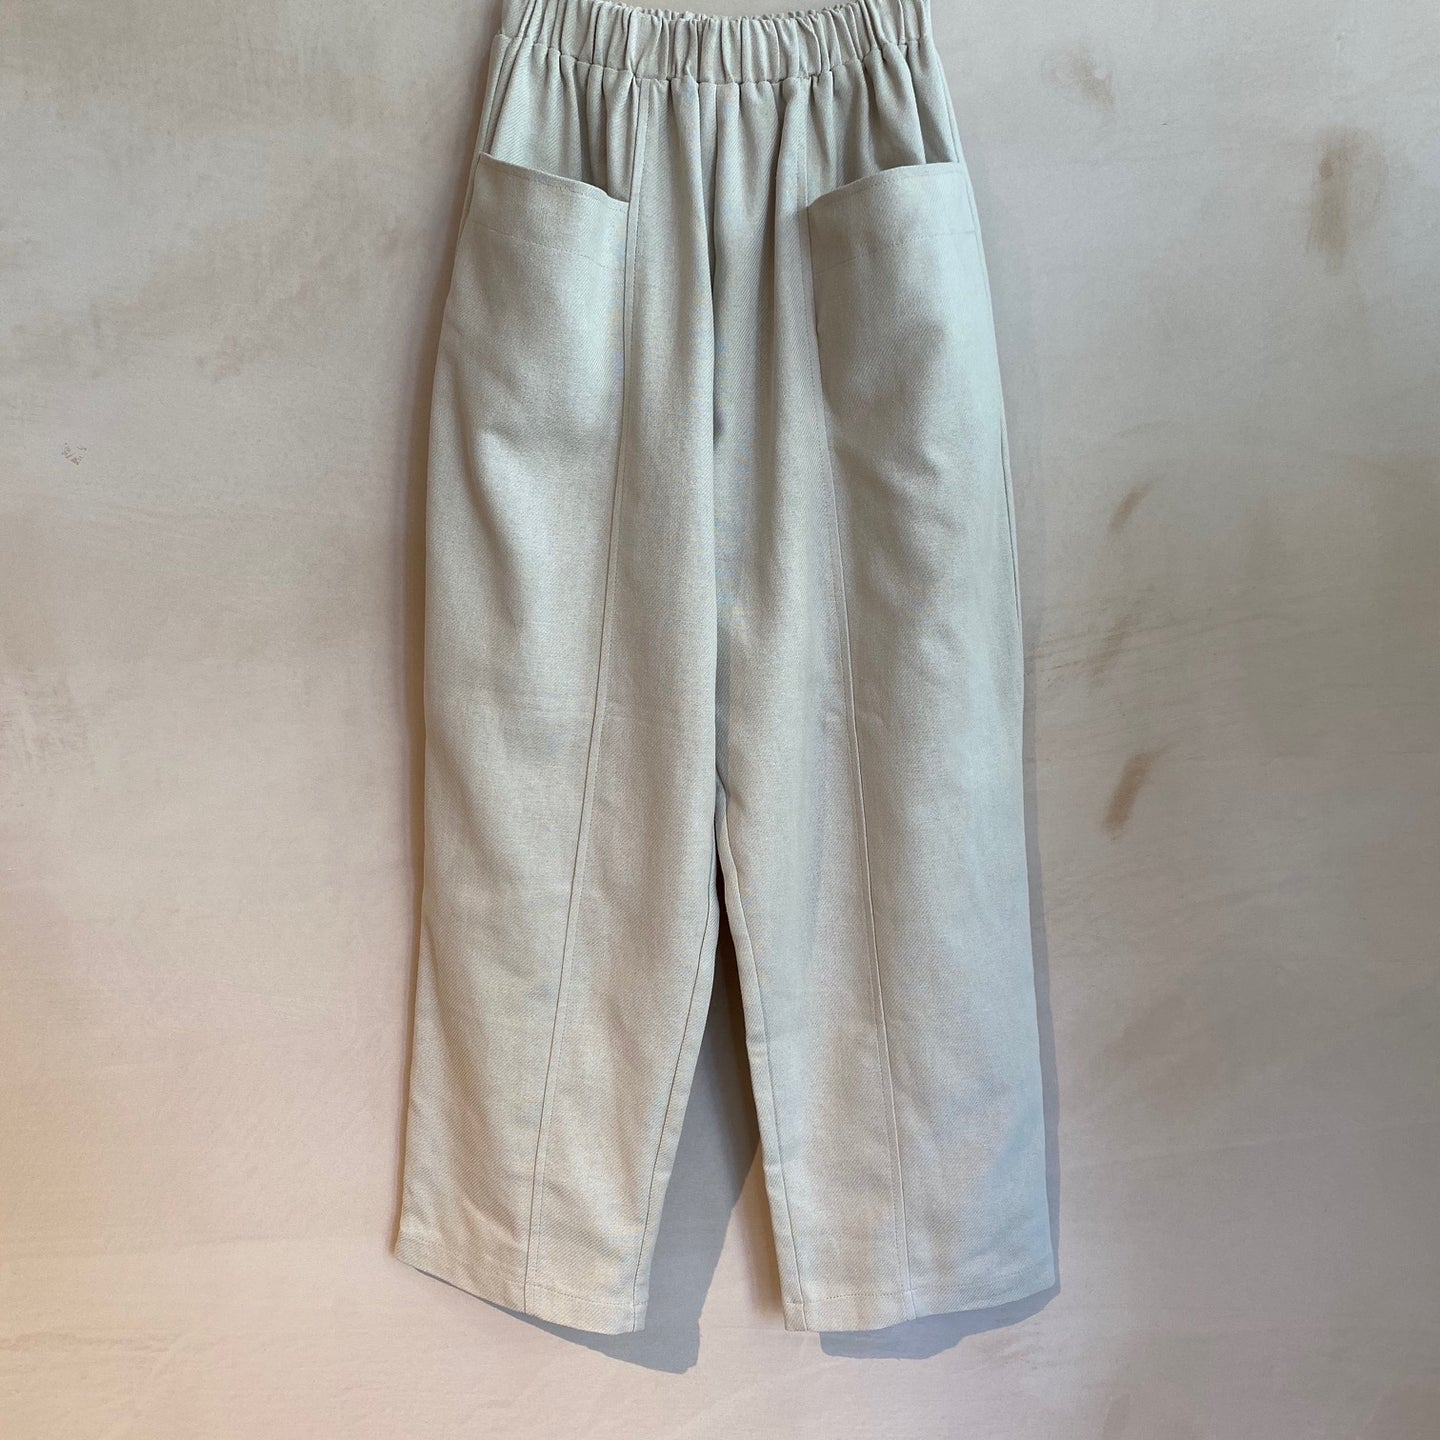 Full Length baggy Trousers with Floppy Front Pockets-Ivory